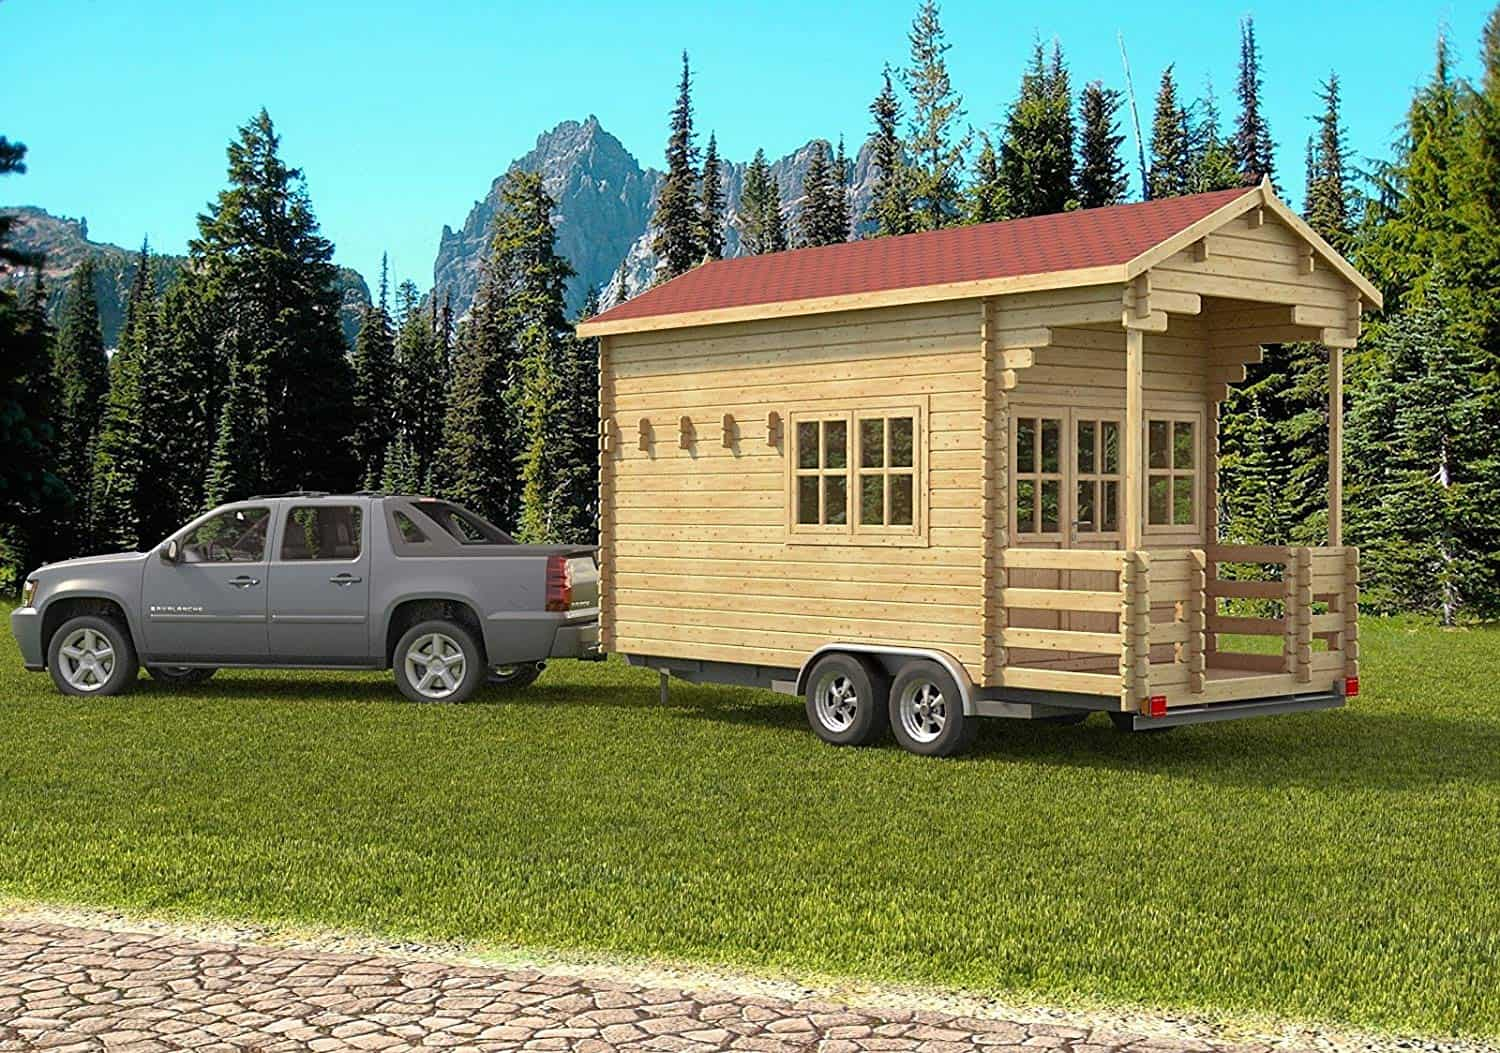 Build It Yourself Campers Build It Yourself Cabin Kits: Tiny House Plans You Can Easily Build Yourself From A Tiny